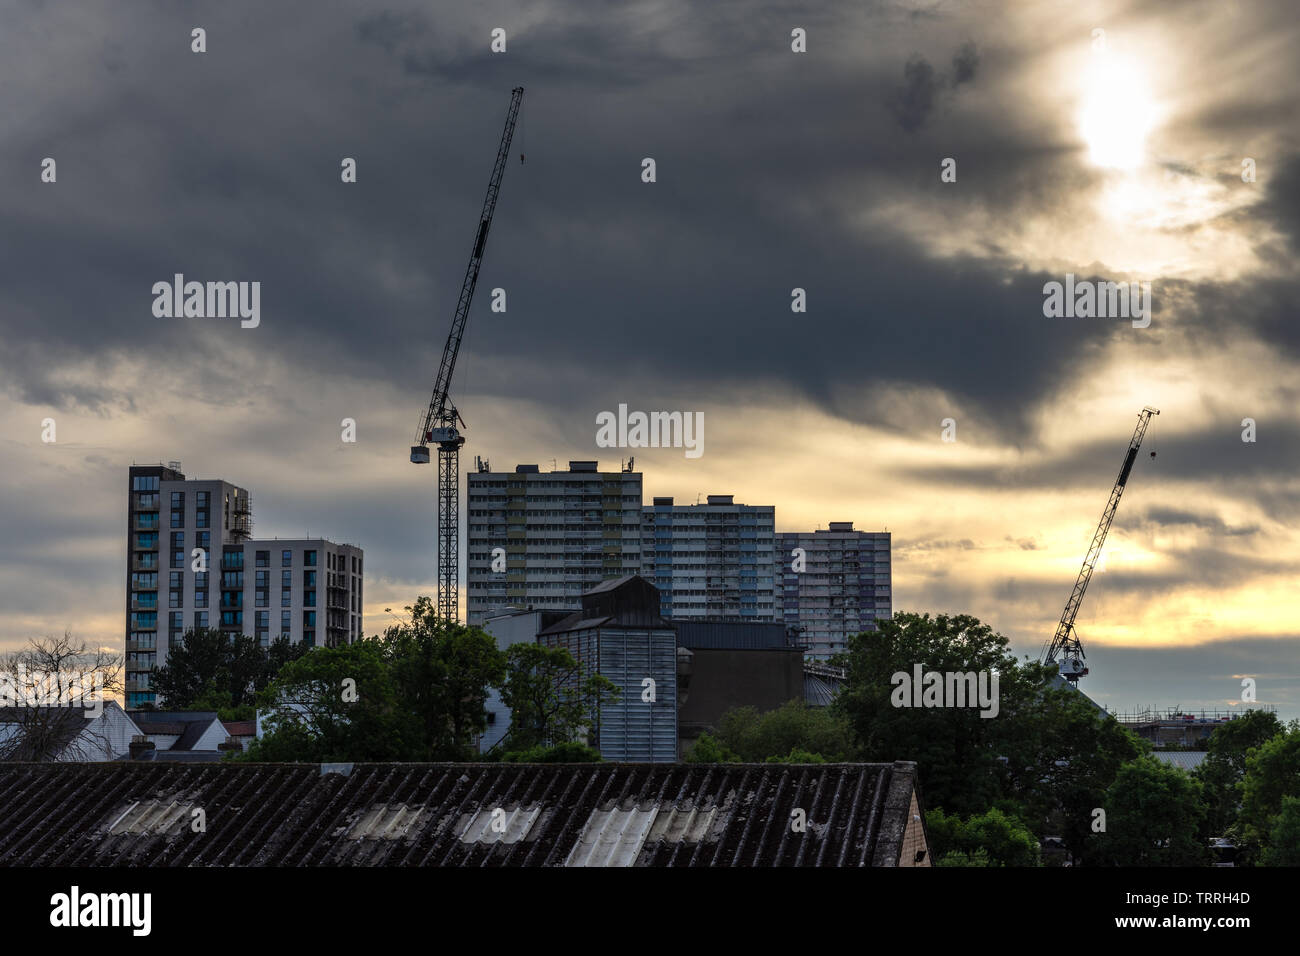 London, England, UK - June 1, 2019: The sun sets behind the remaining tower blocks of the Alma Estate during regeneration of the housing in the Ponder Stock Photo